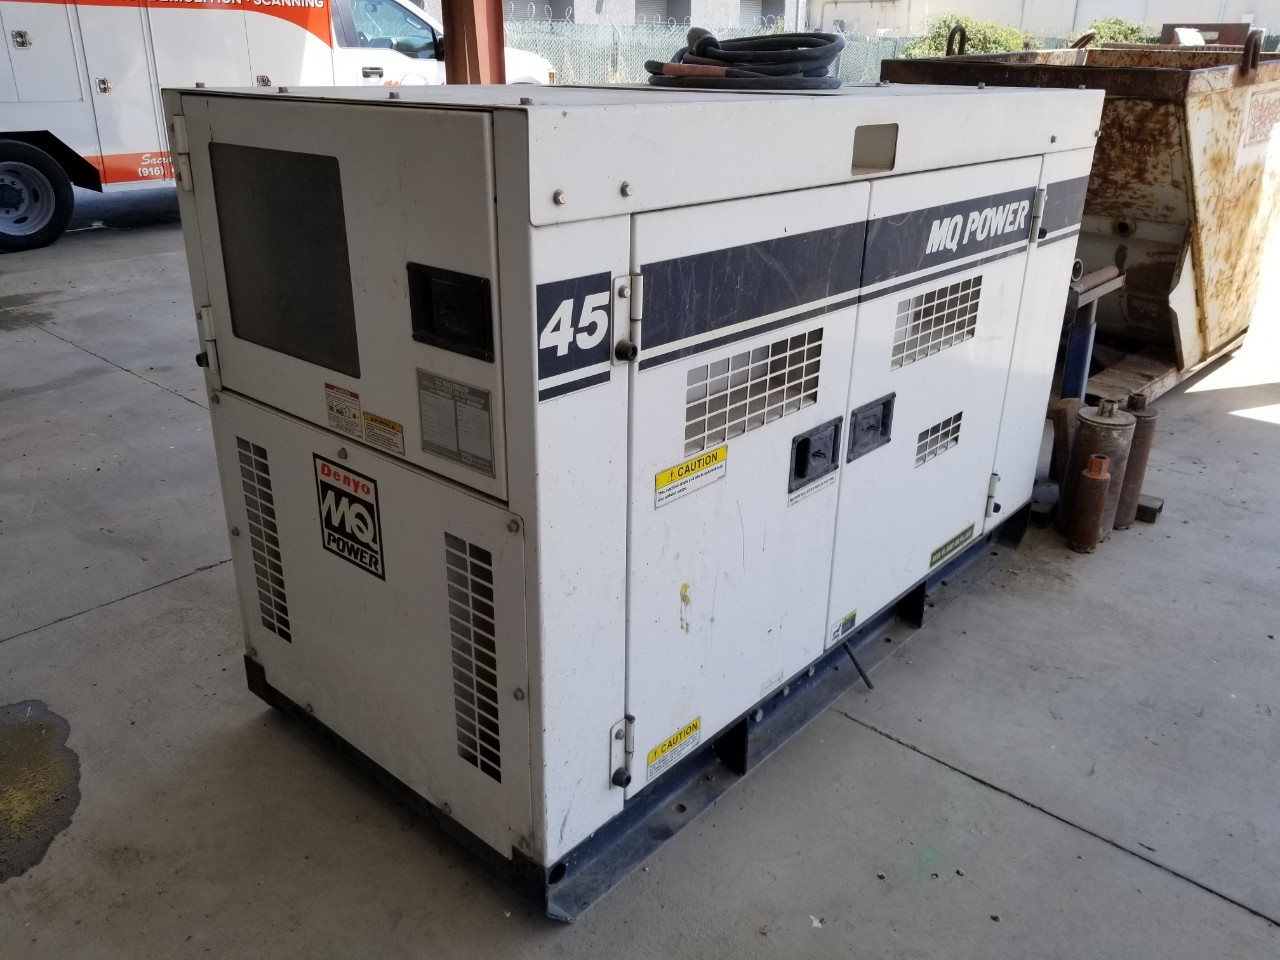 2012 Mq Power Model DH-04801